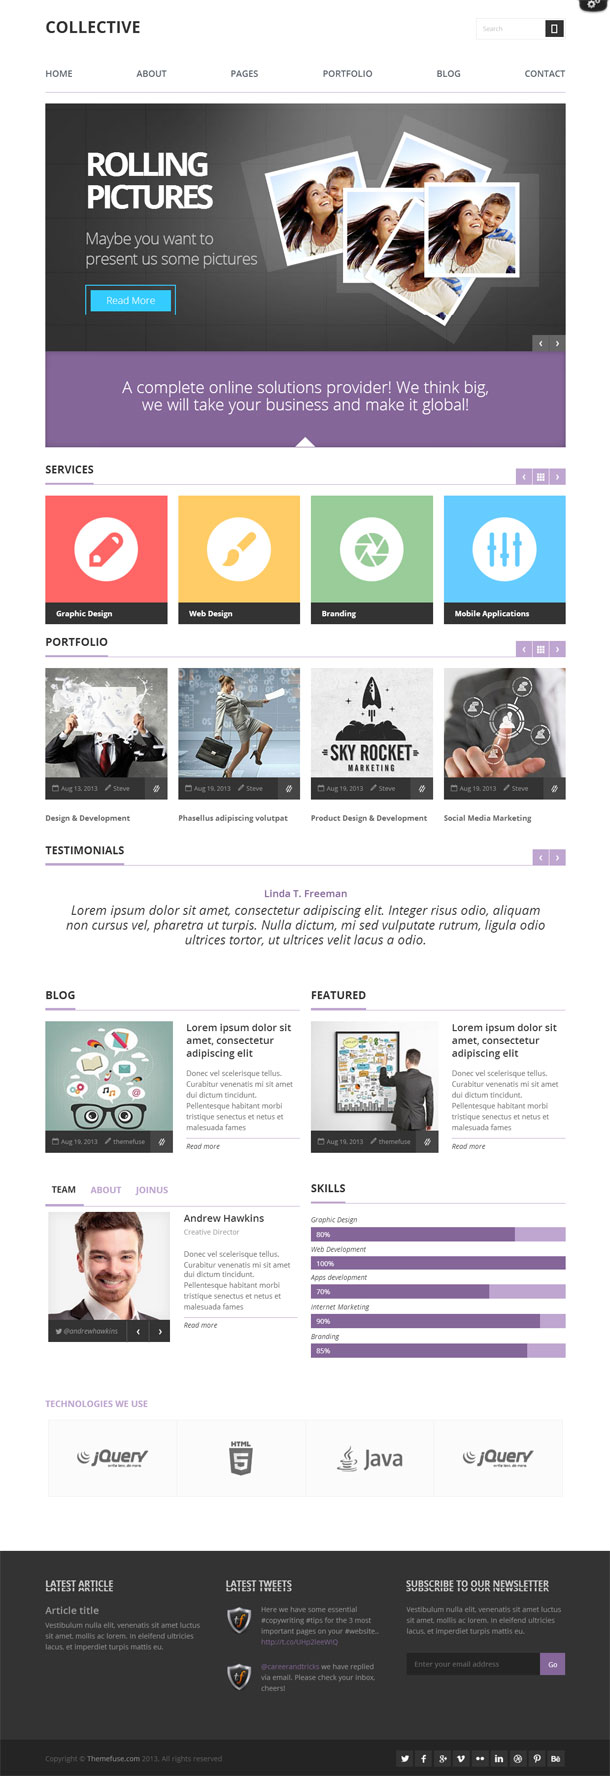 Collective Business Theme Image